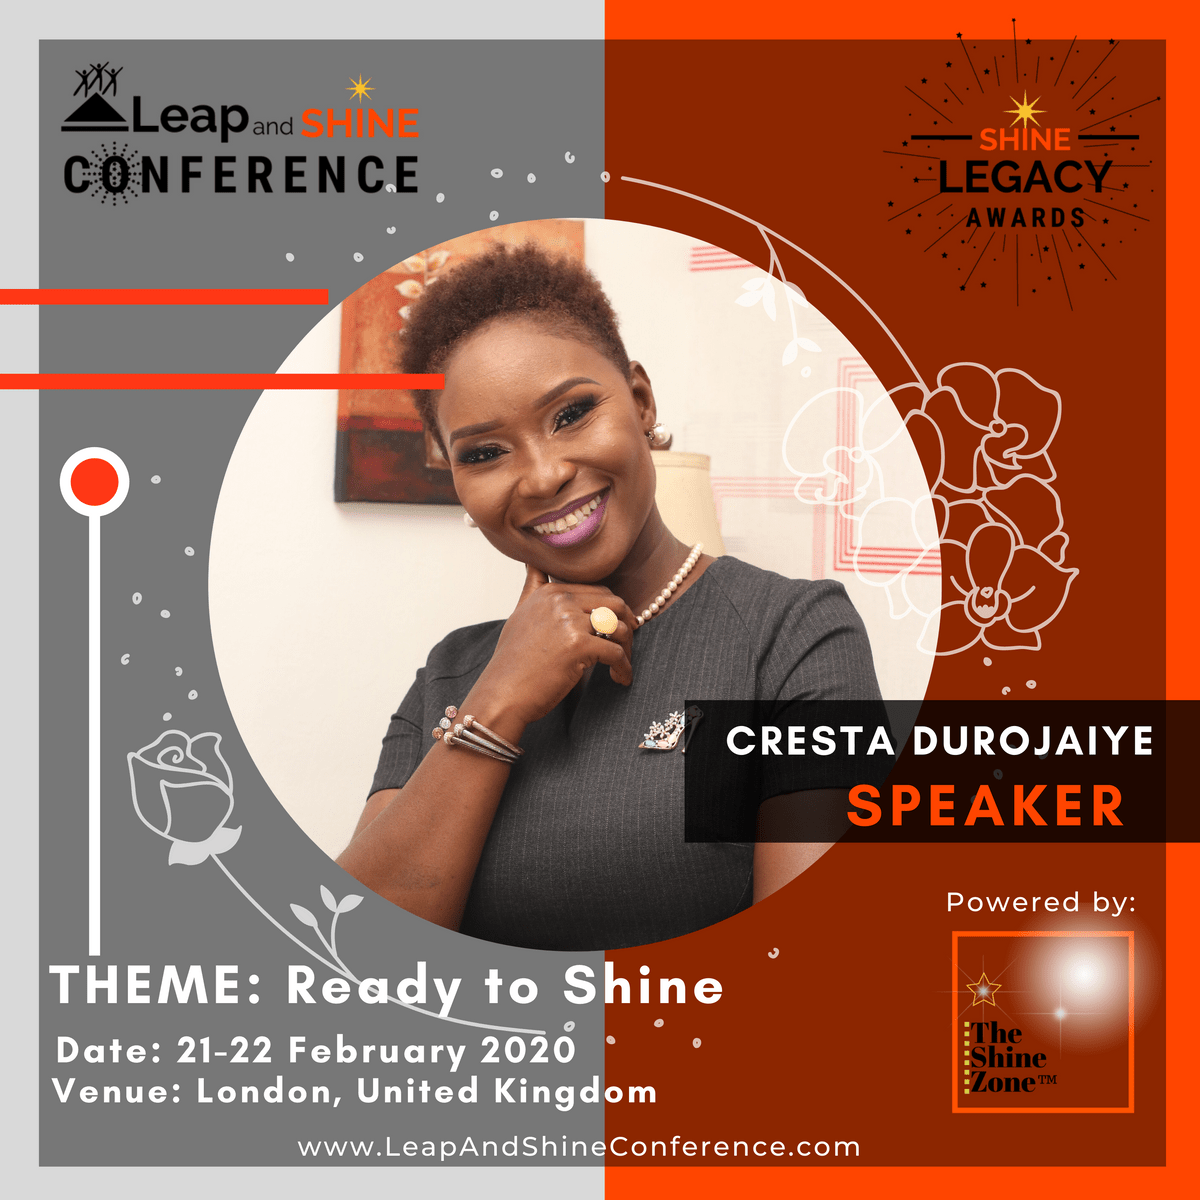 Cresta Durojaiye is speaking at Leap and Shine Conference 2020 in London